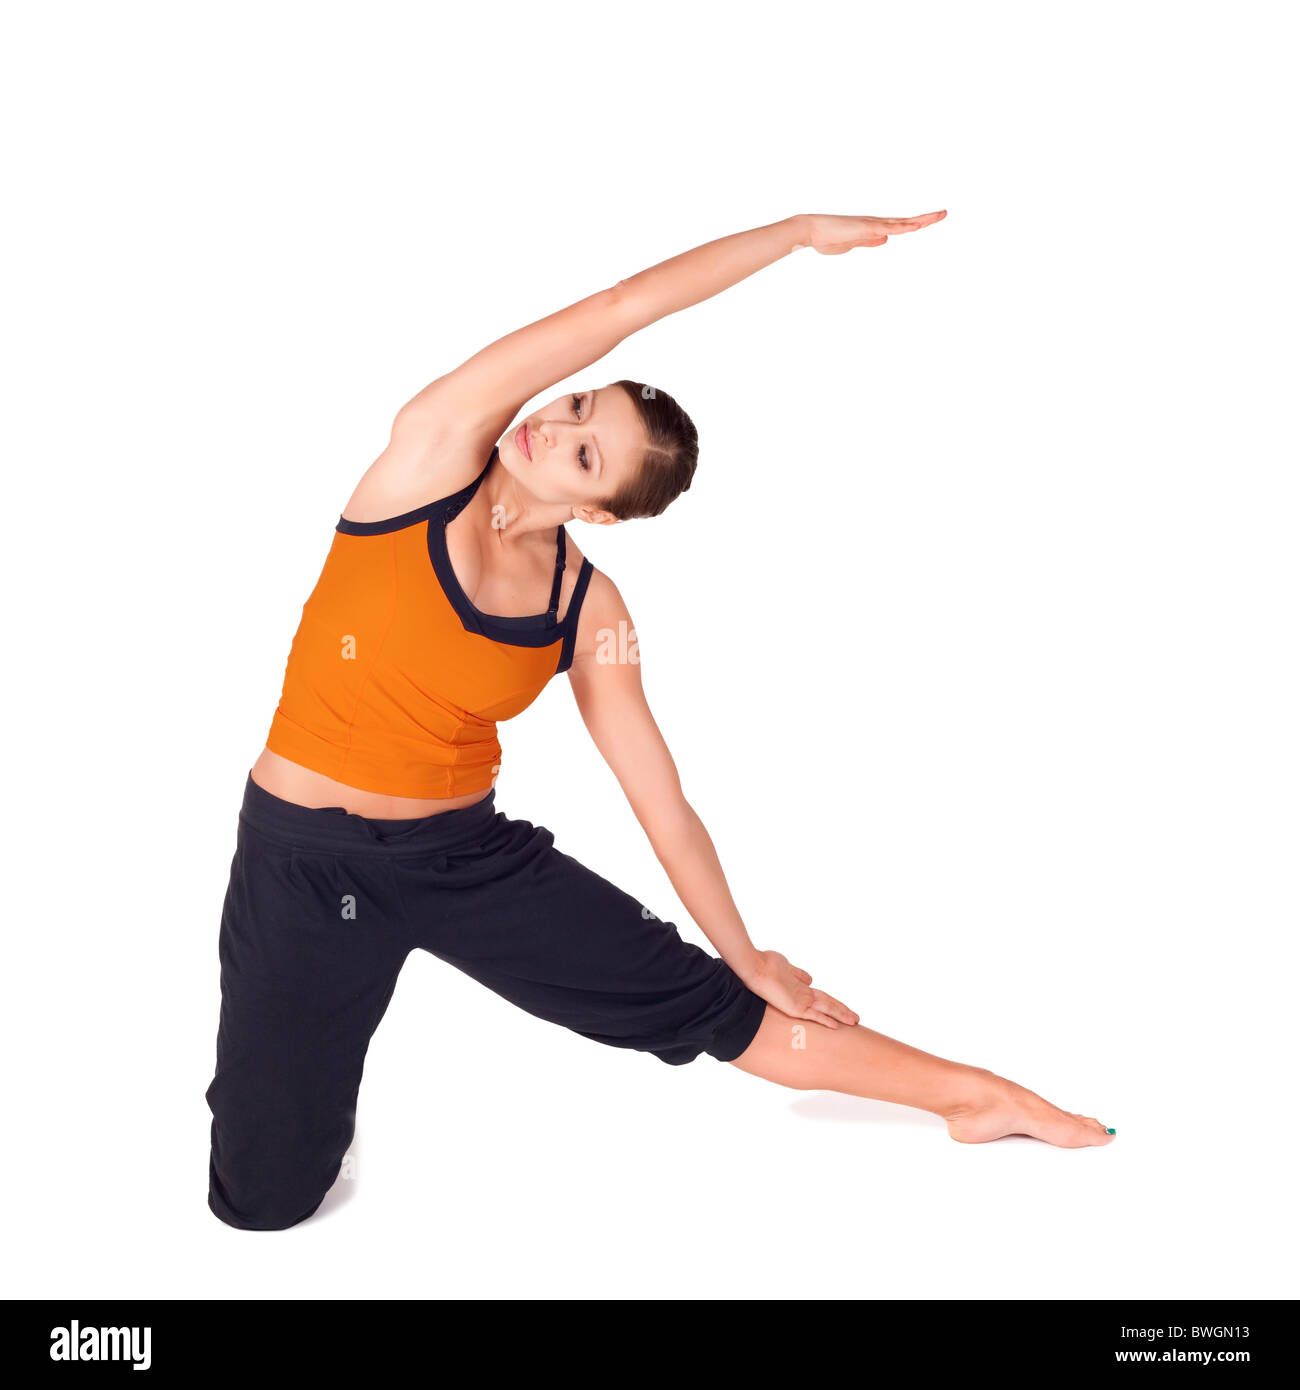 Fit Woman Doing Yoga Exercise Called Gate Pose Sanskrit Name Parighasana Isolated Over White Background